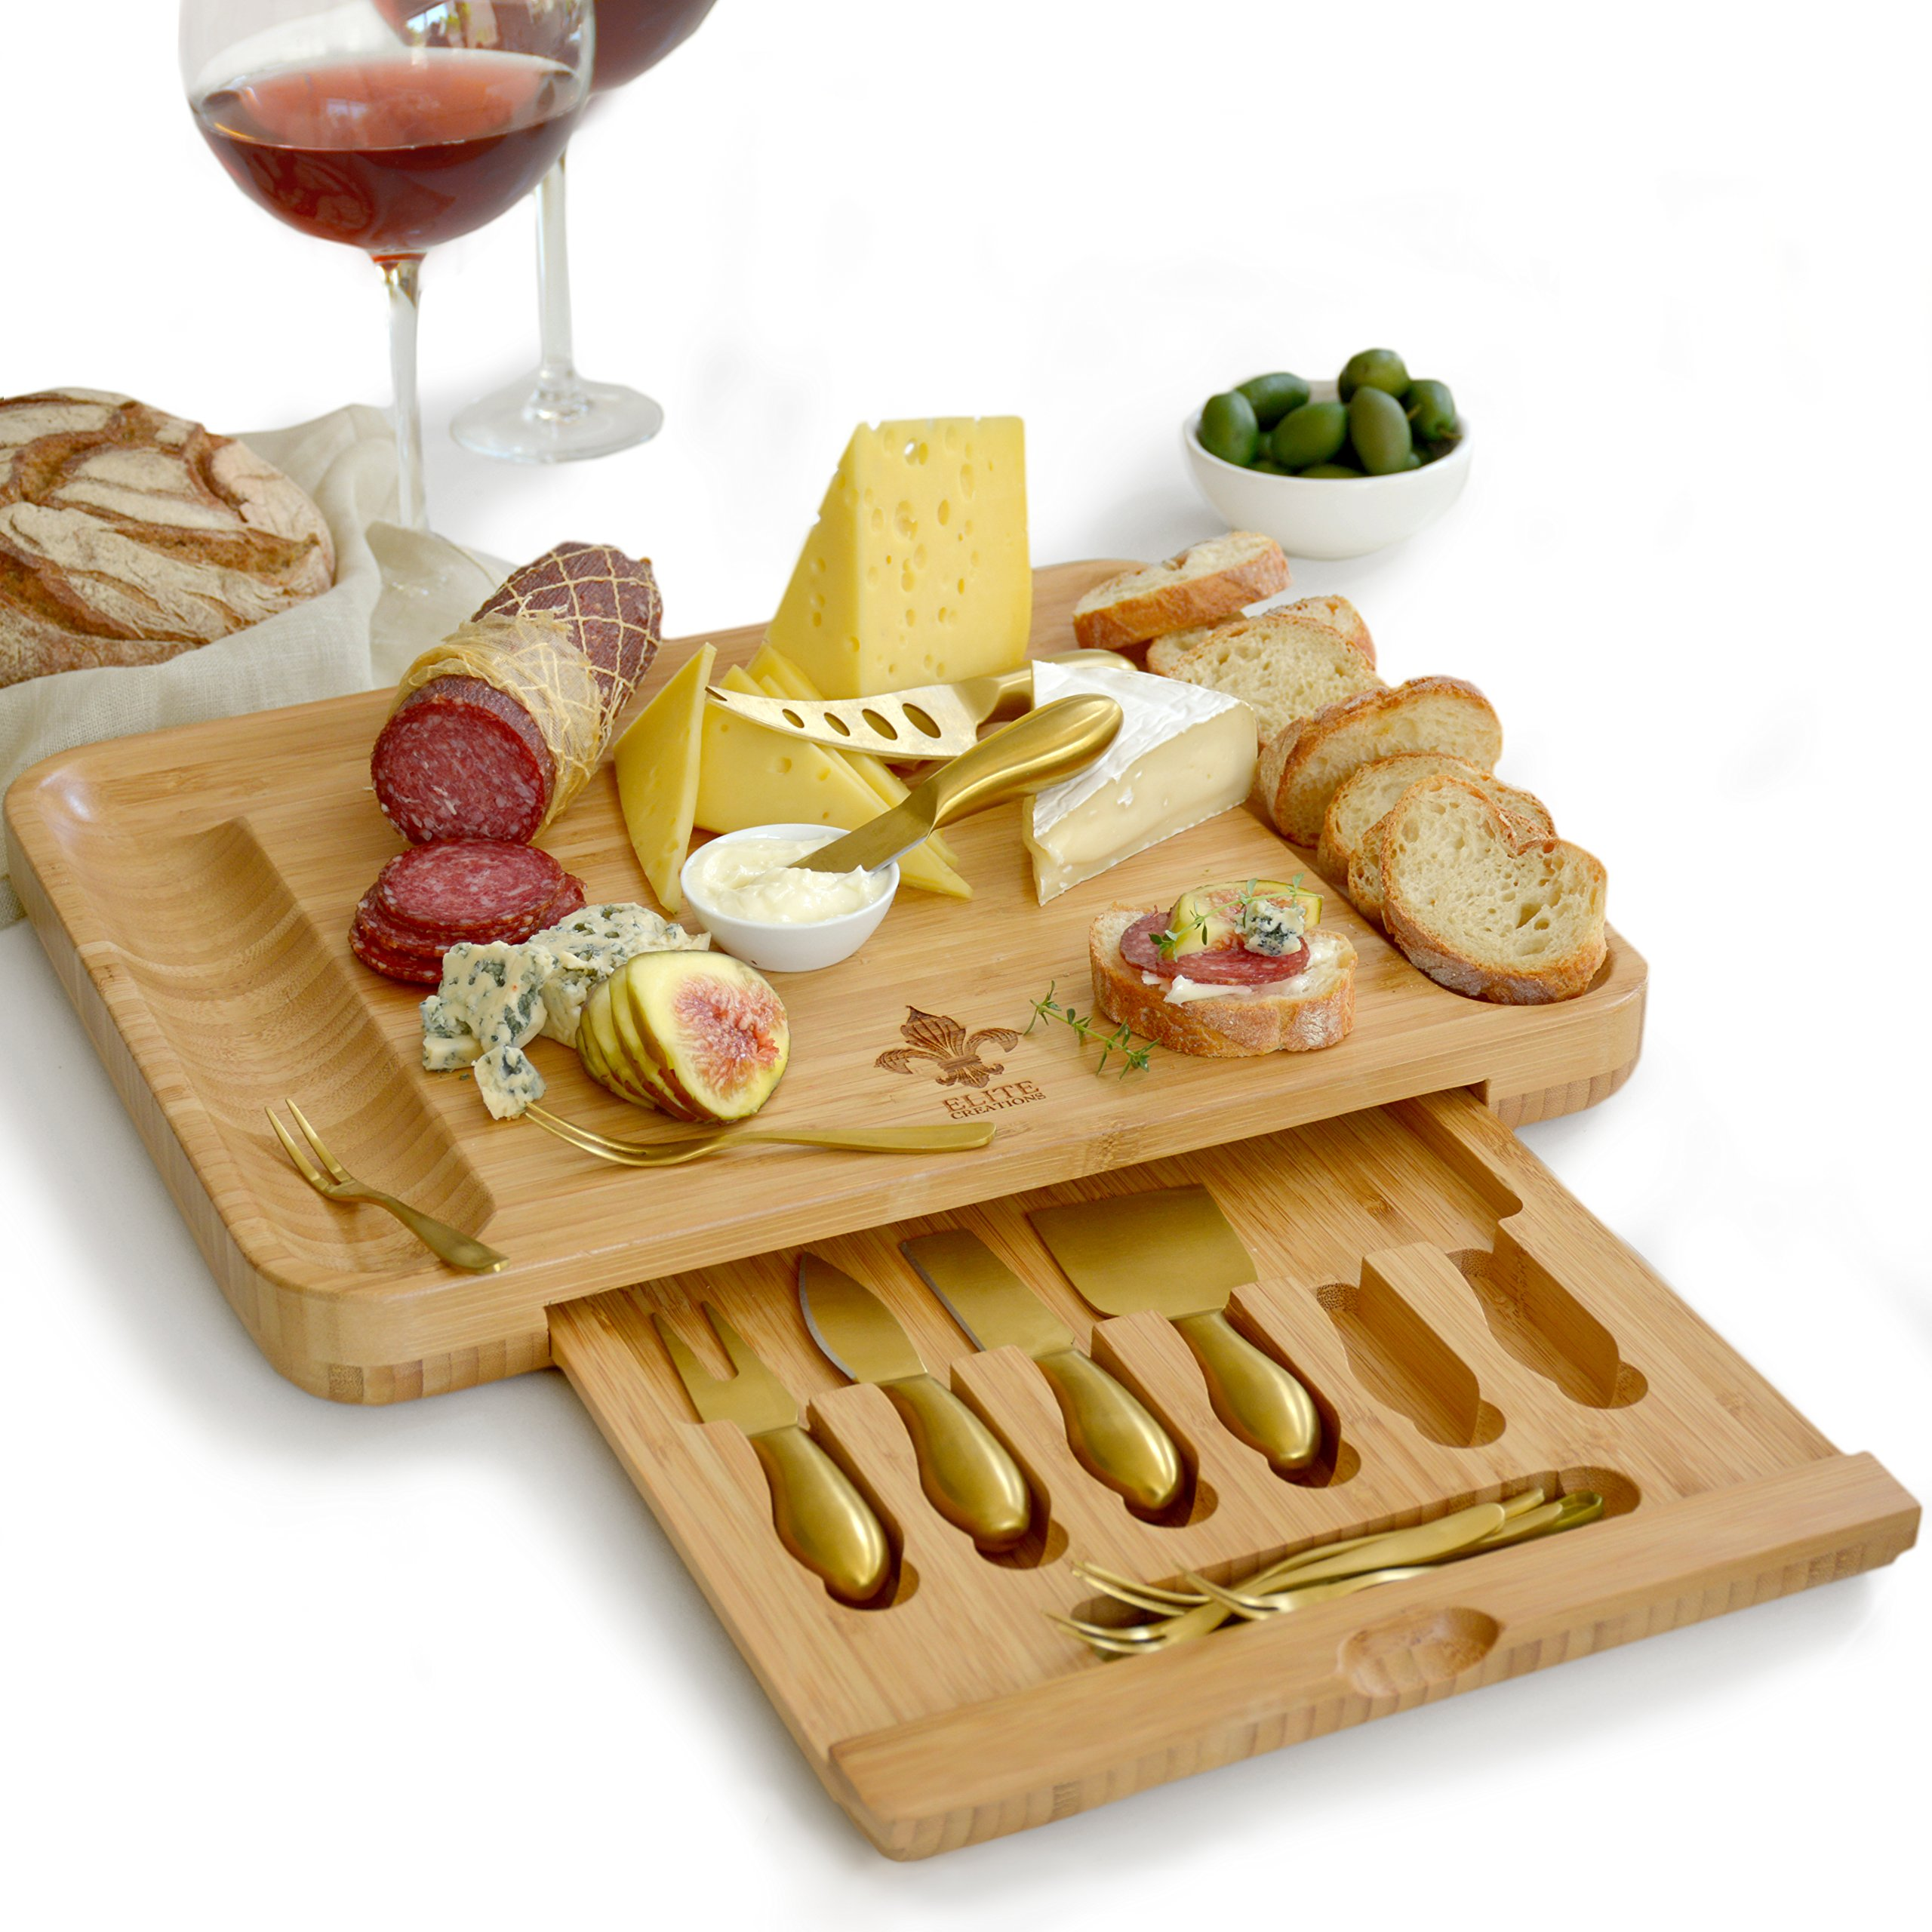 Exquisite Cheese Cutting Board & Knife Set - X-Large Bamboo board (15.75''x13'') with 6 Stainless Steel gold Brushed Finish Cheese Slicer Tools + 6 Tasting Forks By Elite Creations (Gold)